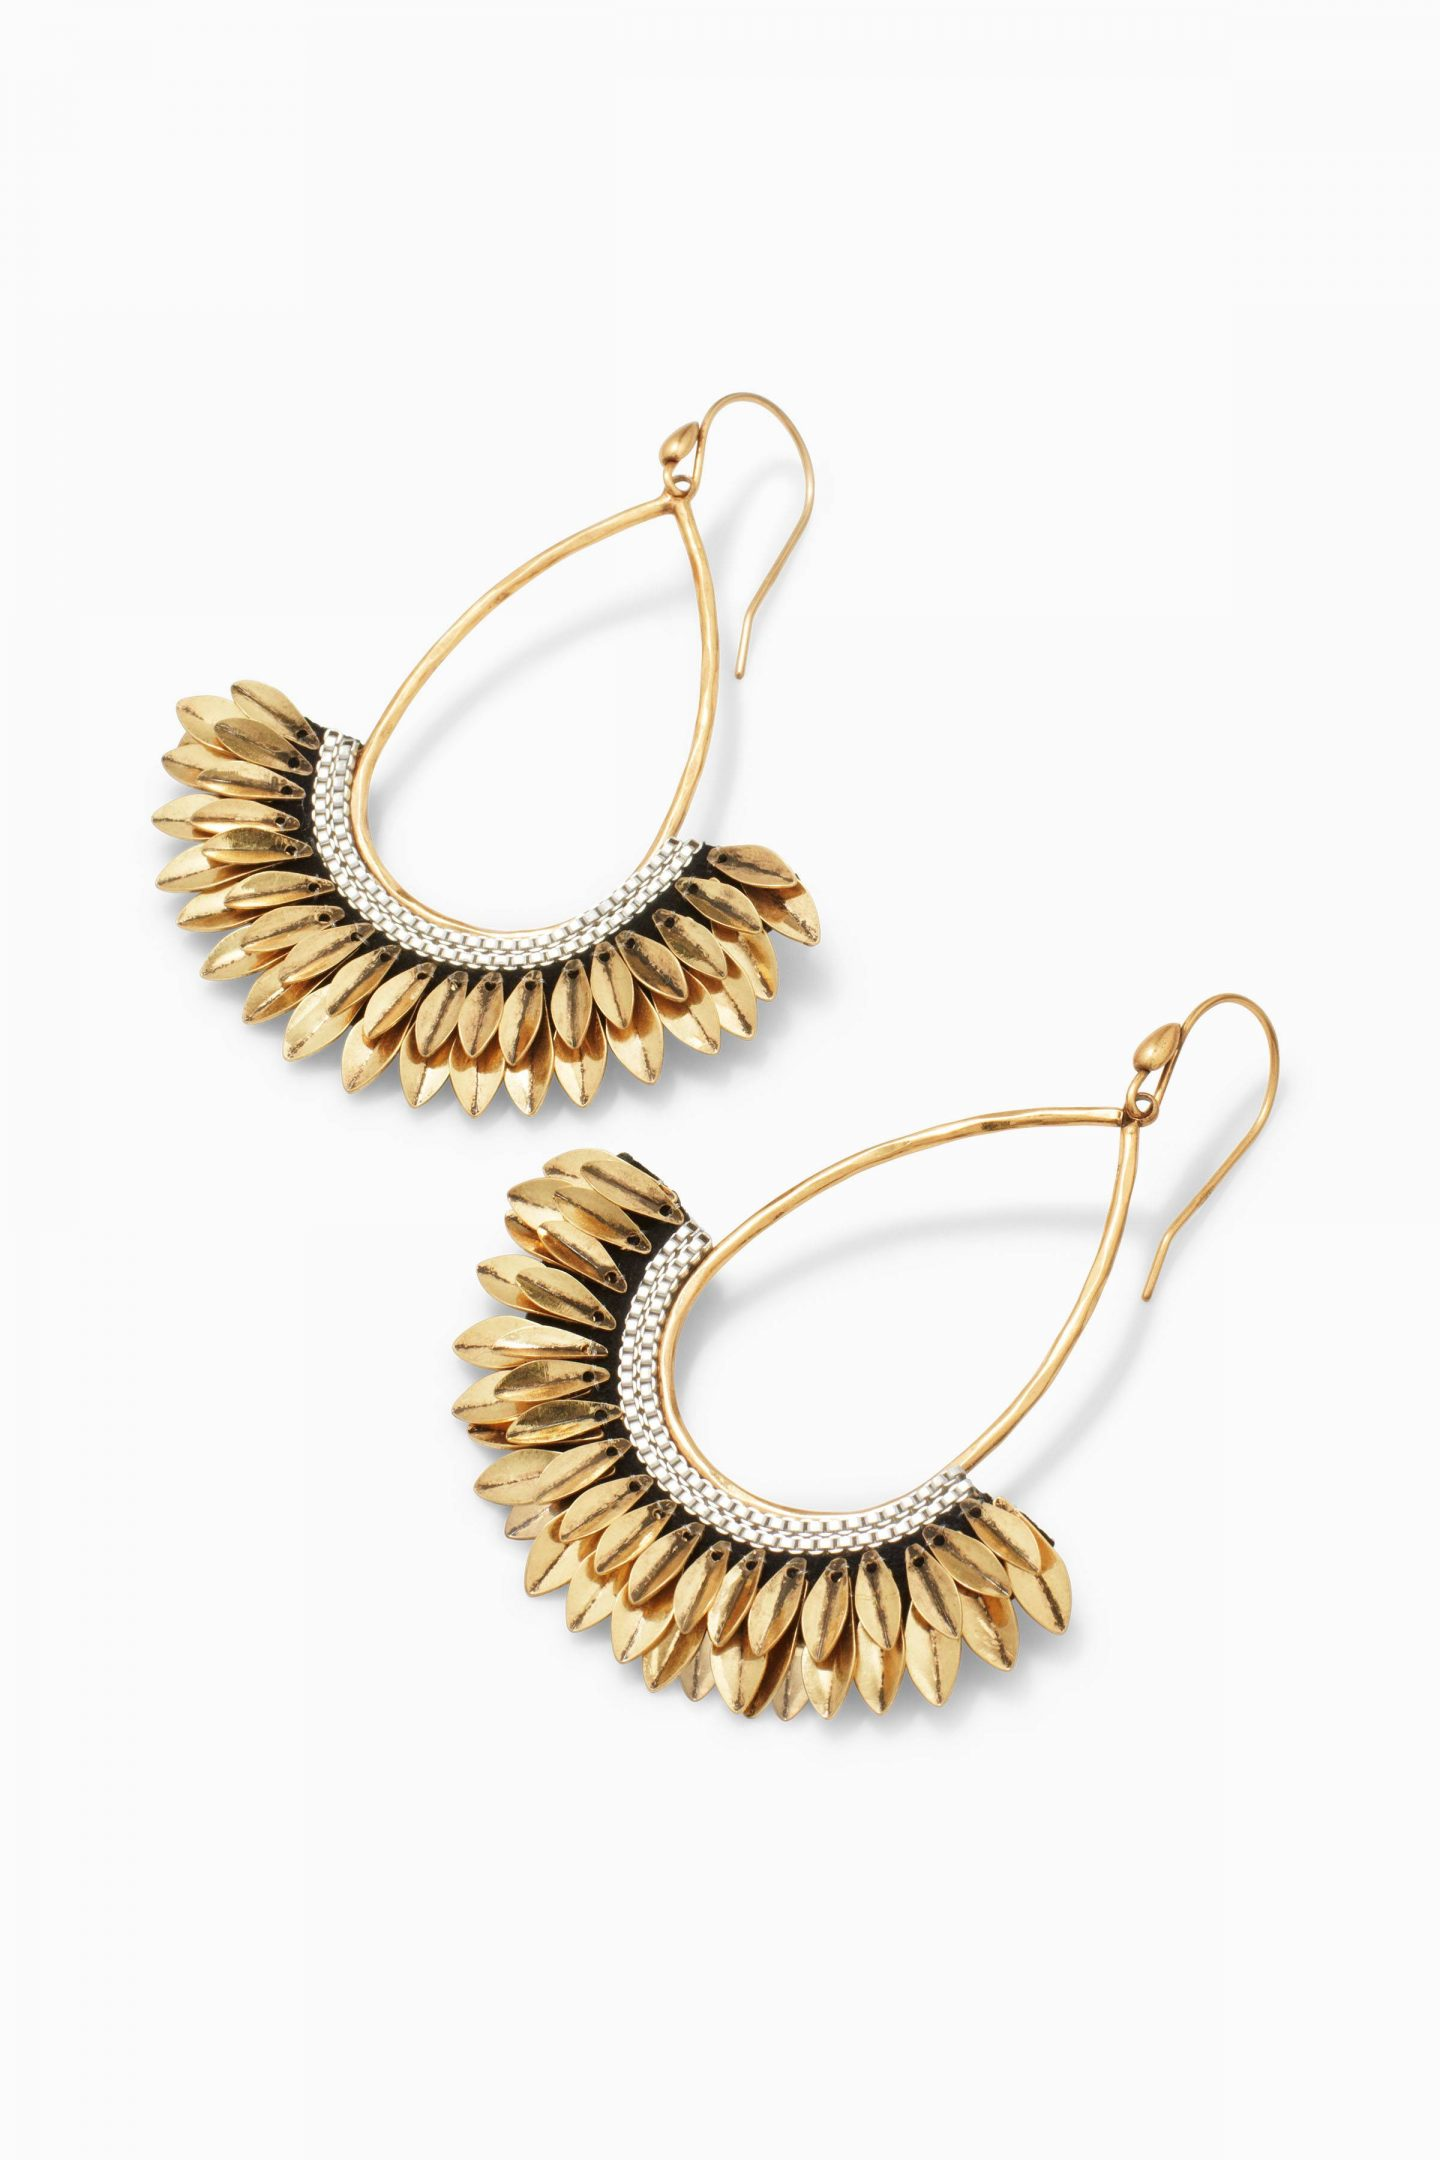 STELLA & DOT WISH LIST